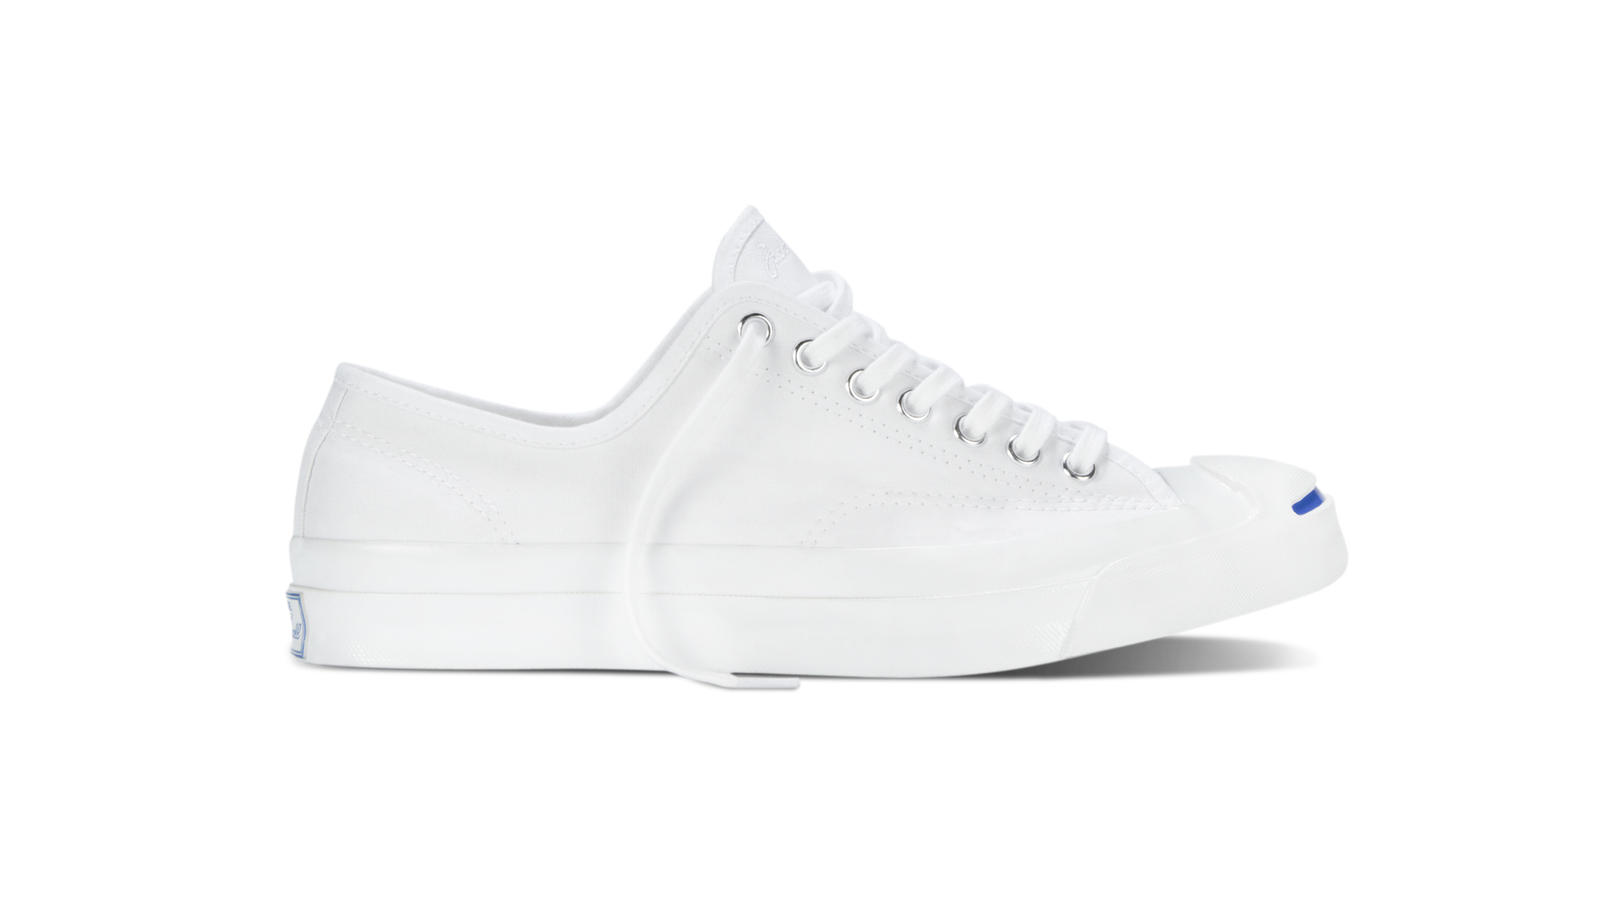 b45c7dd868b CONVERSE DEBUTS THE JACK PURCELL SIGNATURE SNEAKER - Nike News